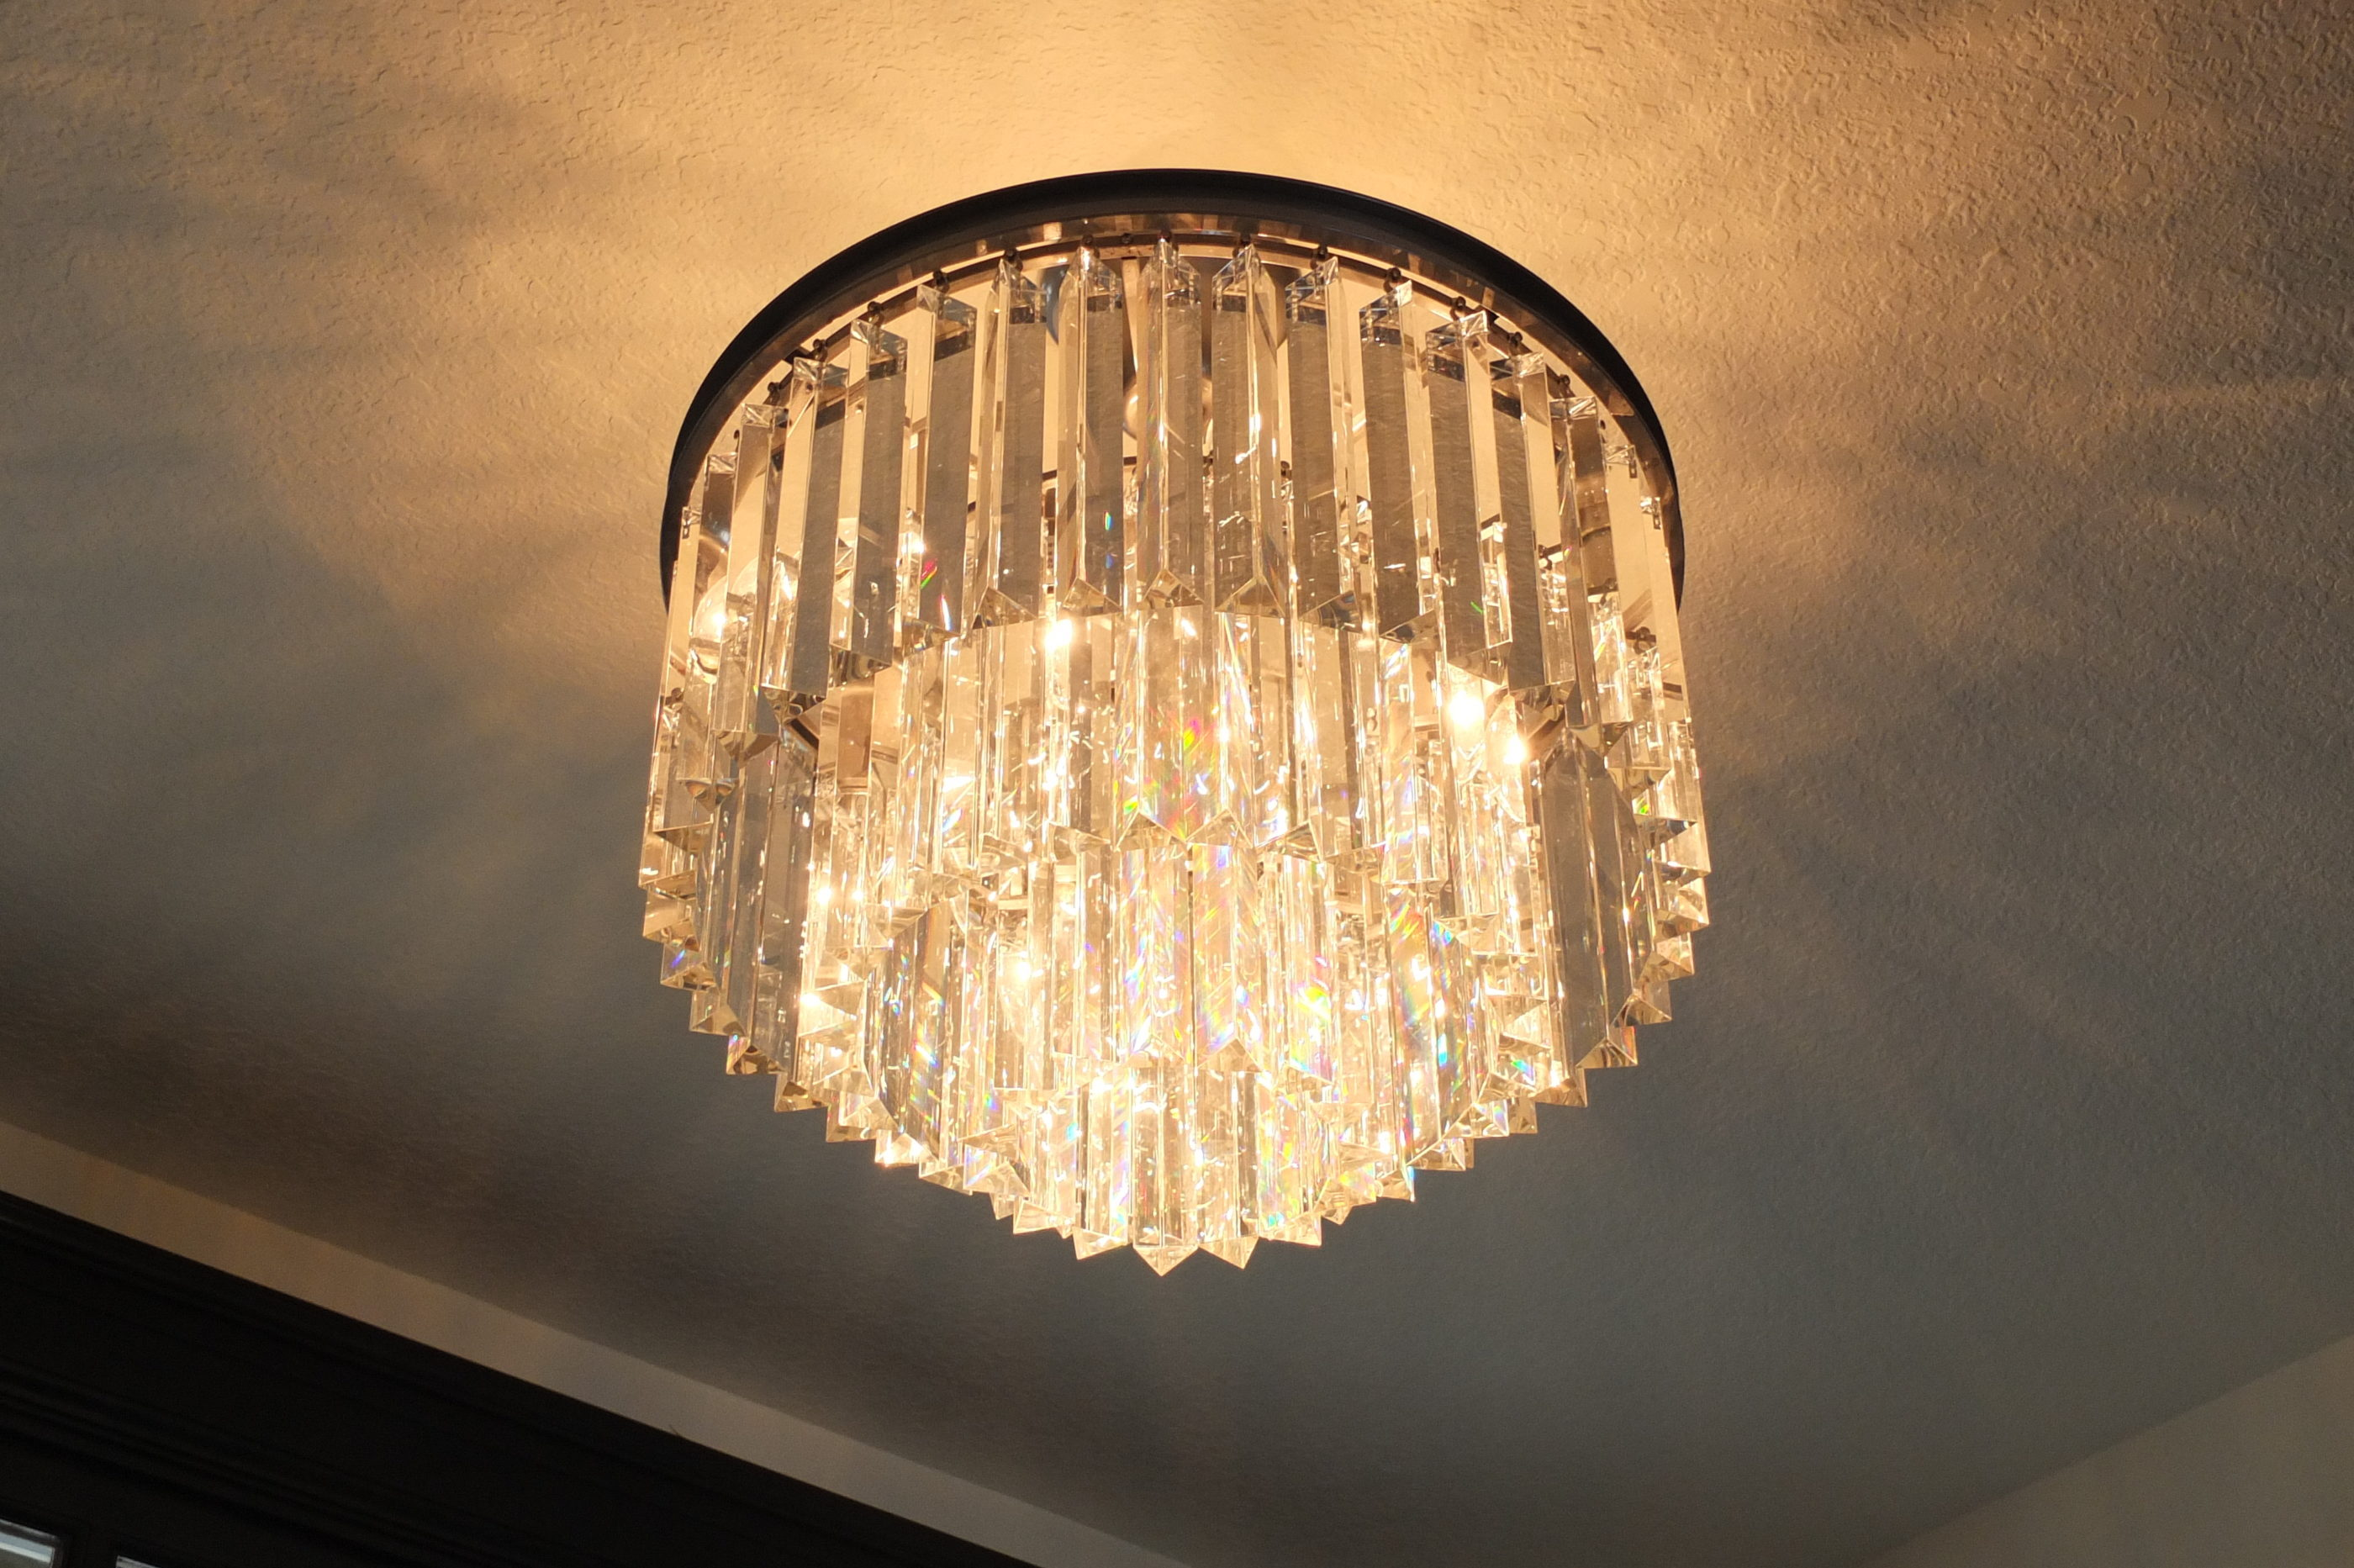 Chandelier With Two Tiers of Crystal Prisms